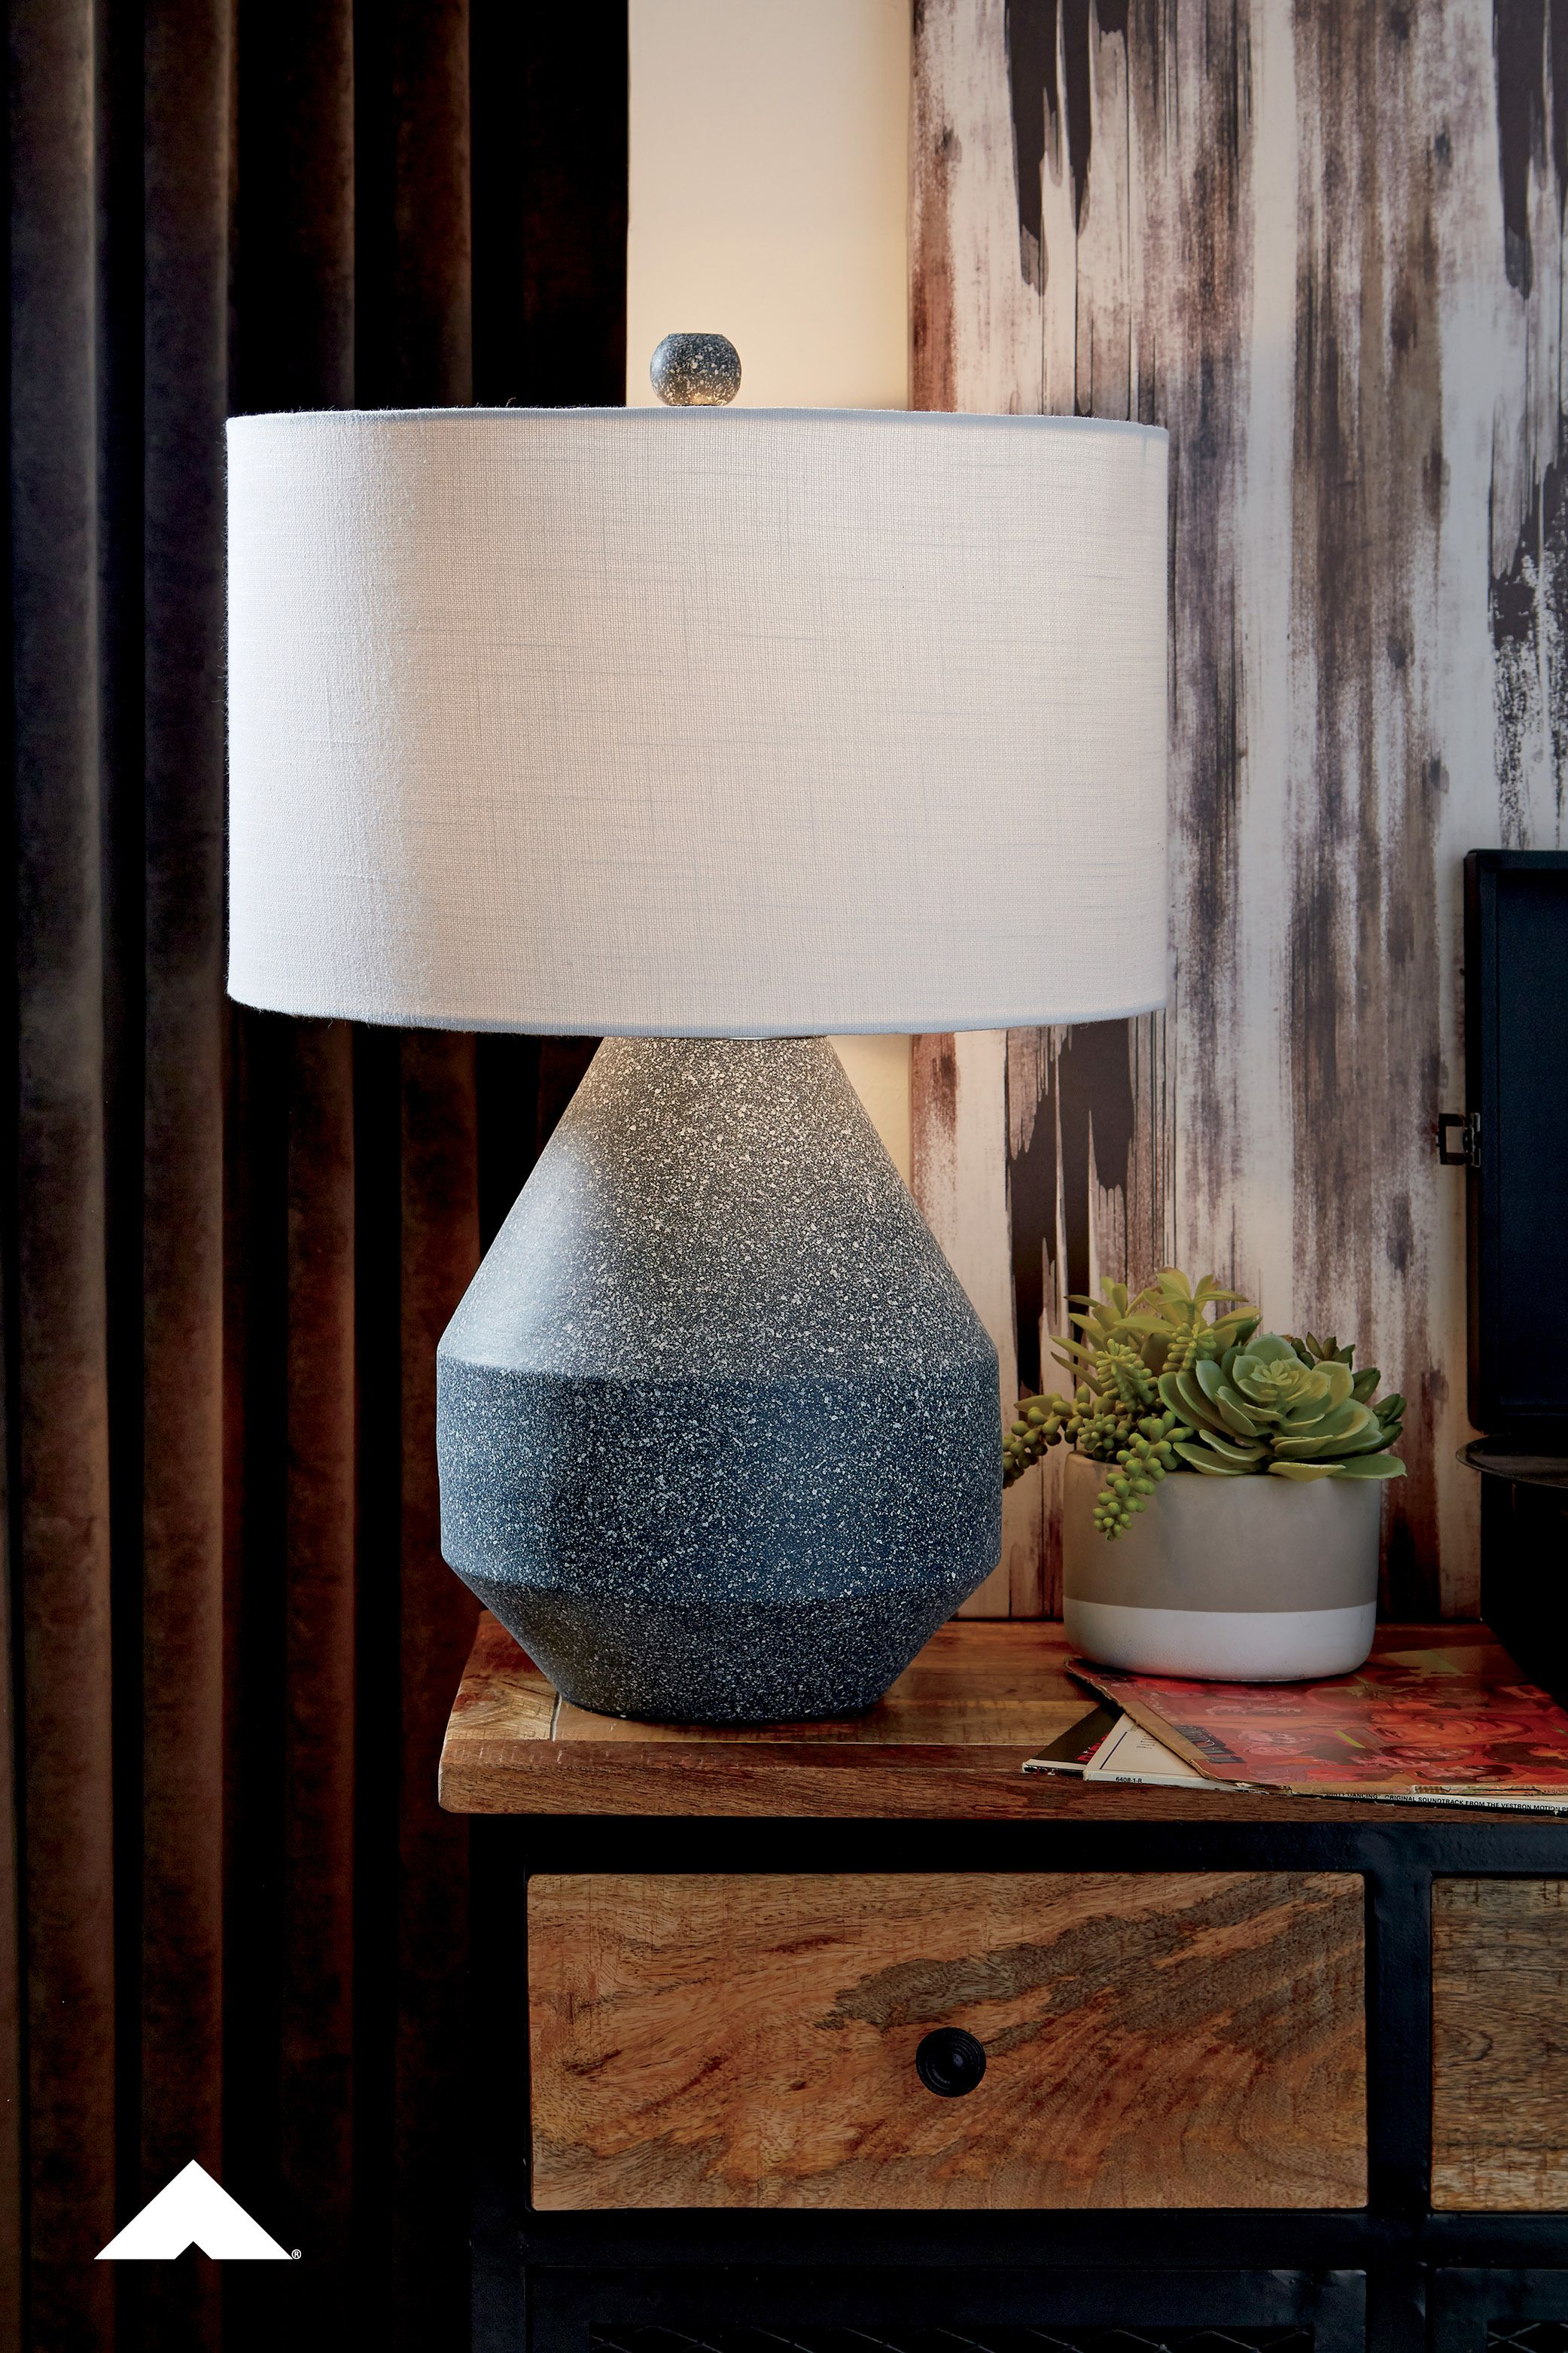 Kristeva Blue Metal Table Lamp By Ashley Furniture Industries Inc Cool And Contemporary From Every Angle This Table Lamp In 2020 Metal Table Lamps Table Lamp Lamp